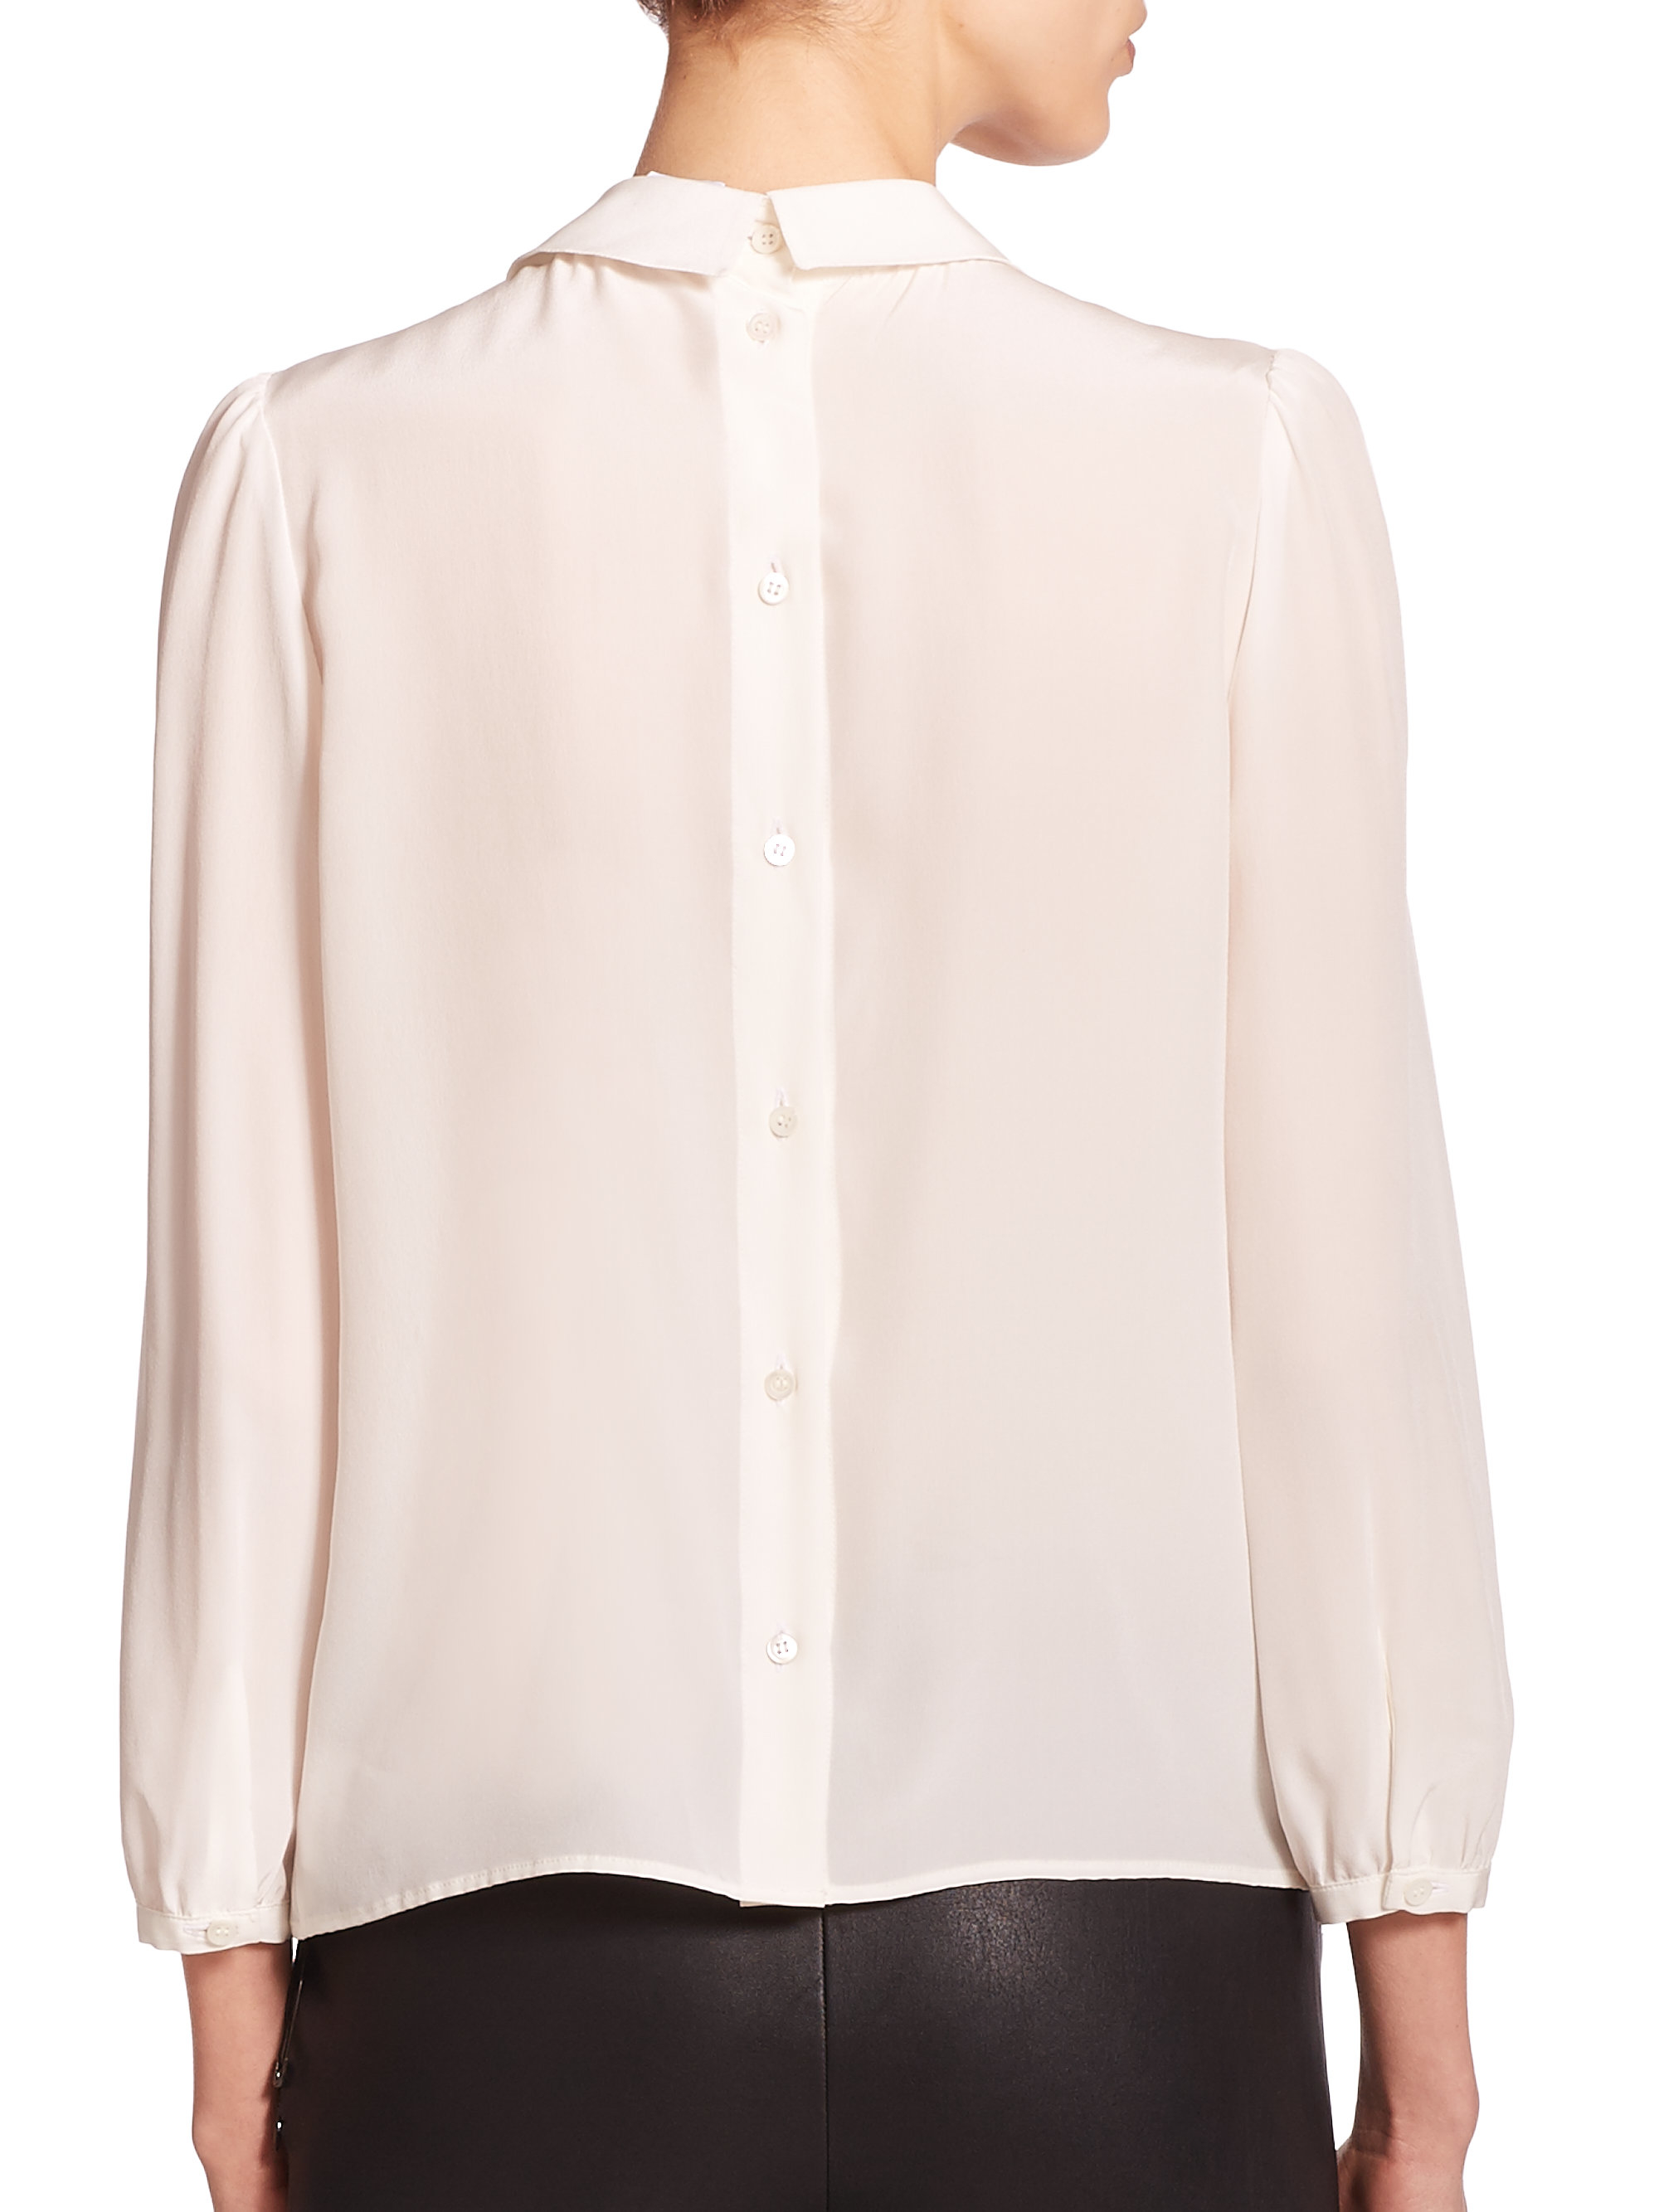 Women'S White Blouse Collar Back Button 113